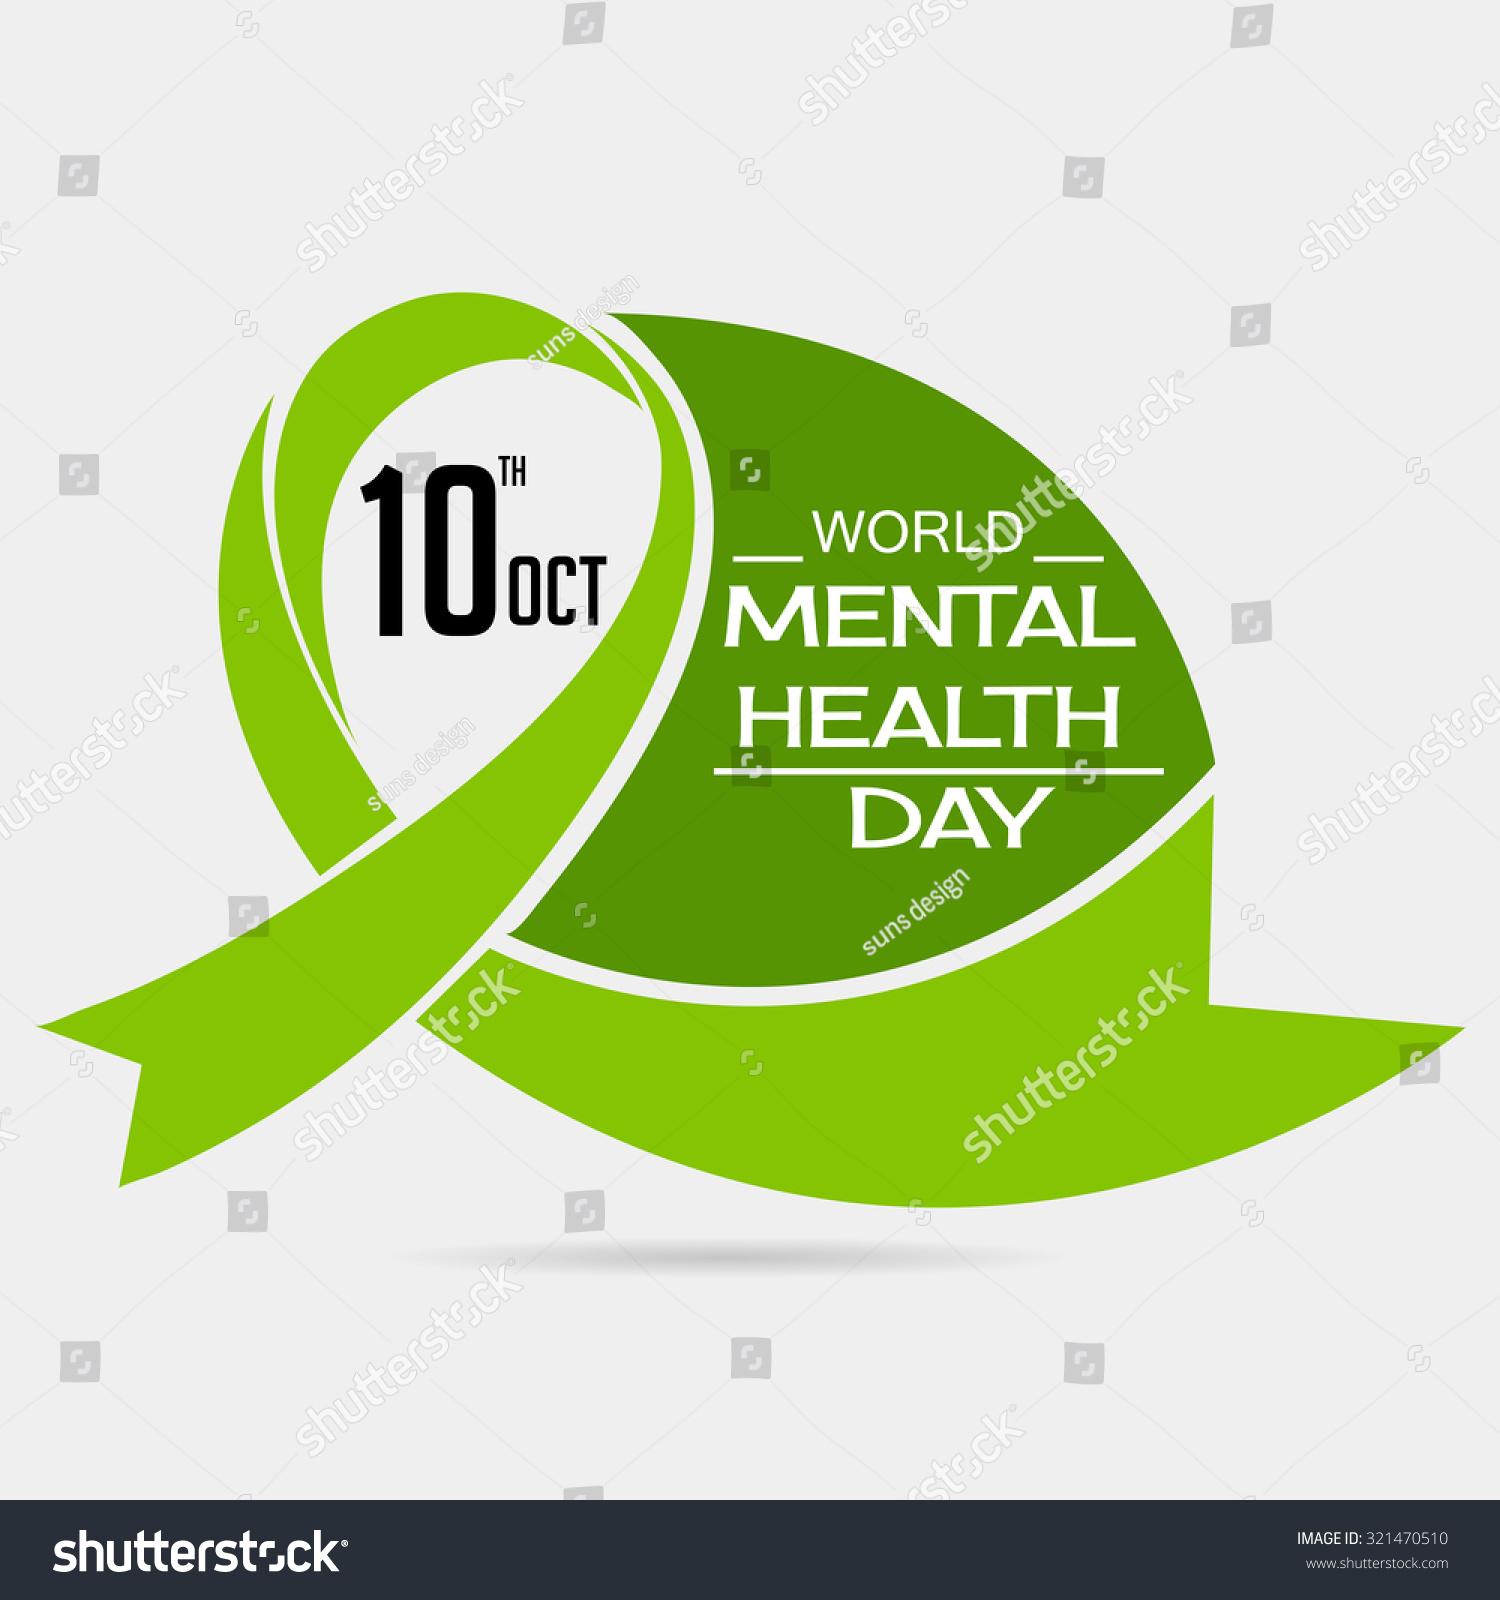 A Mental Health Day